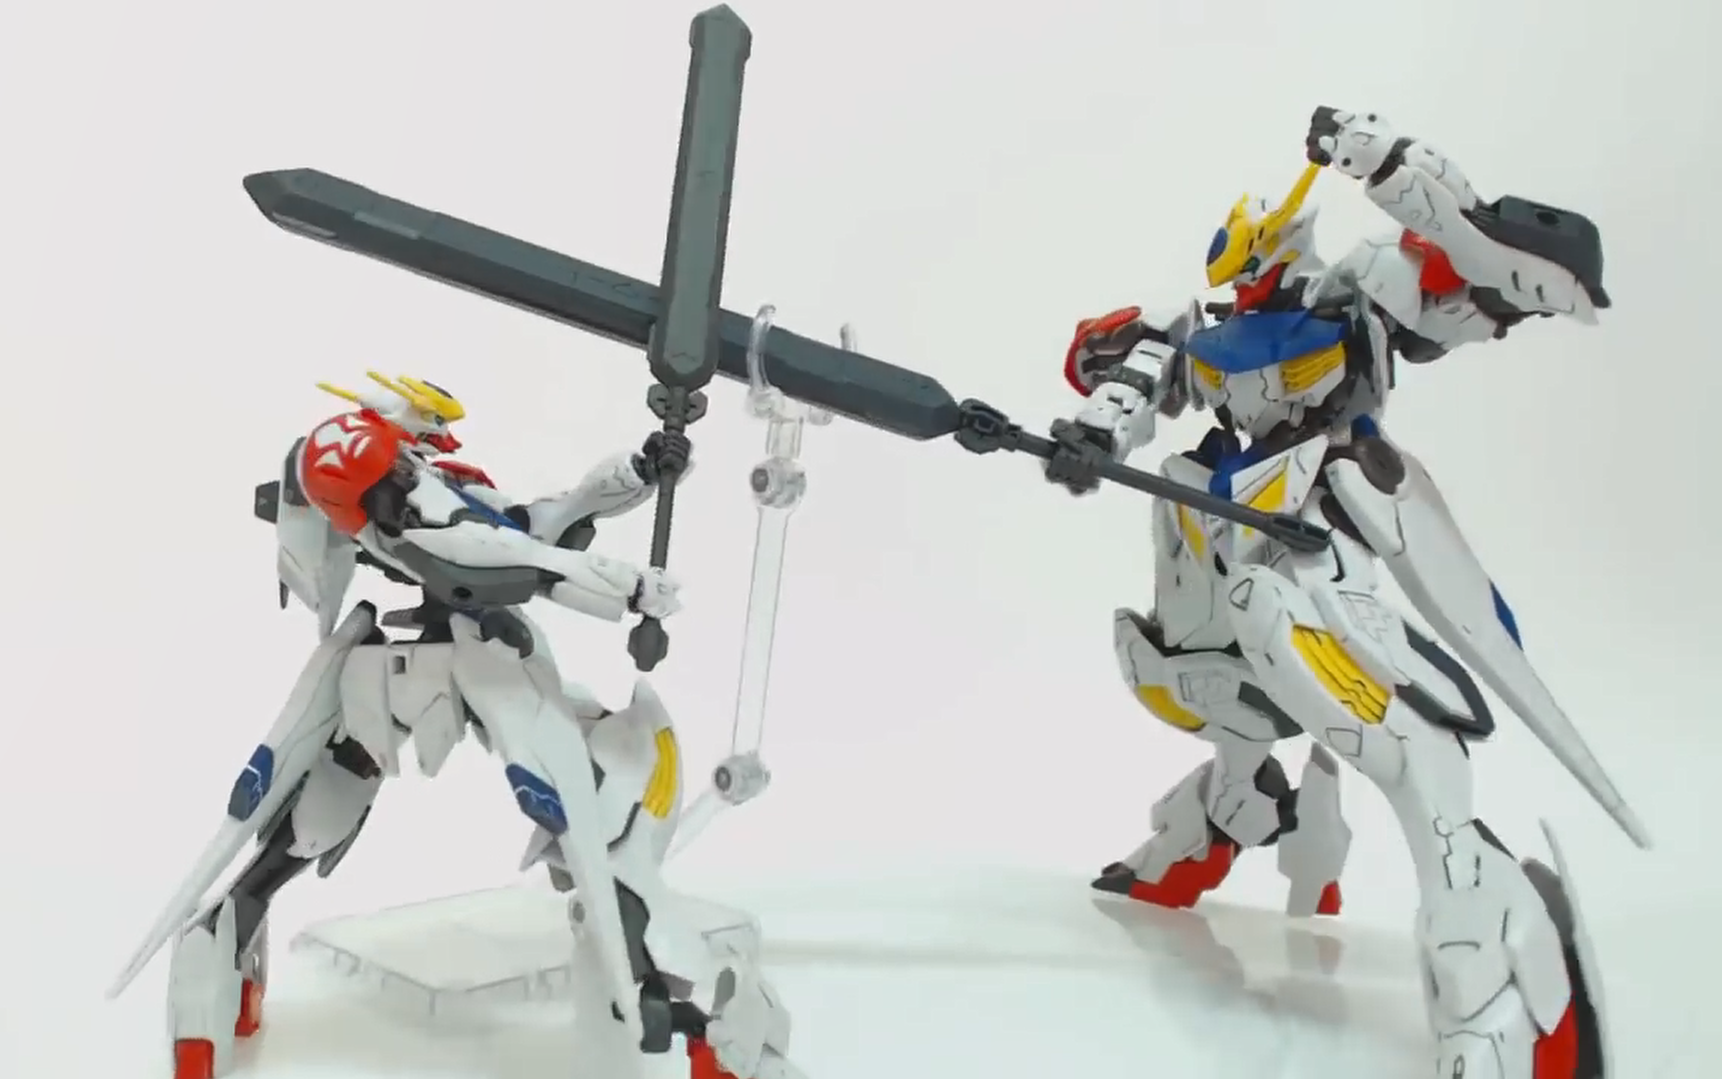 【模型速组】1-100 巴巴托斯 天狼座 天狼型 GUNDAM BARBATOS LUPUS 『铁血的奥尔芬斯』 BUILDERs TV(纯搬运)